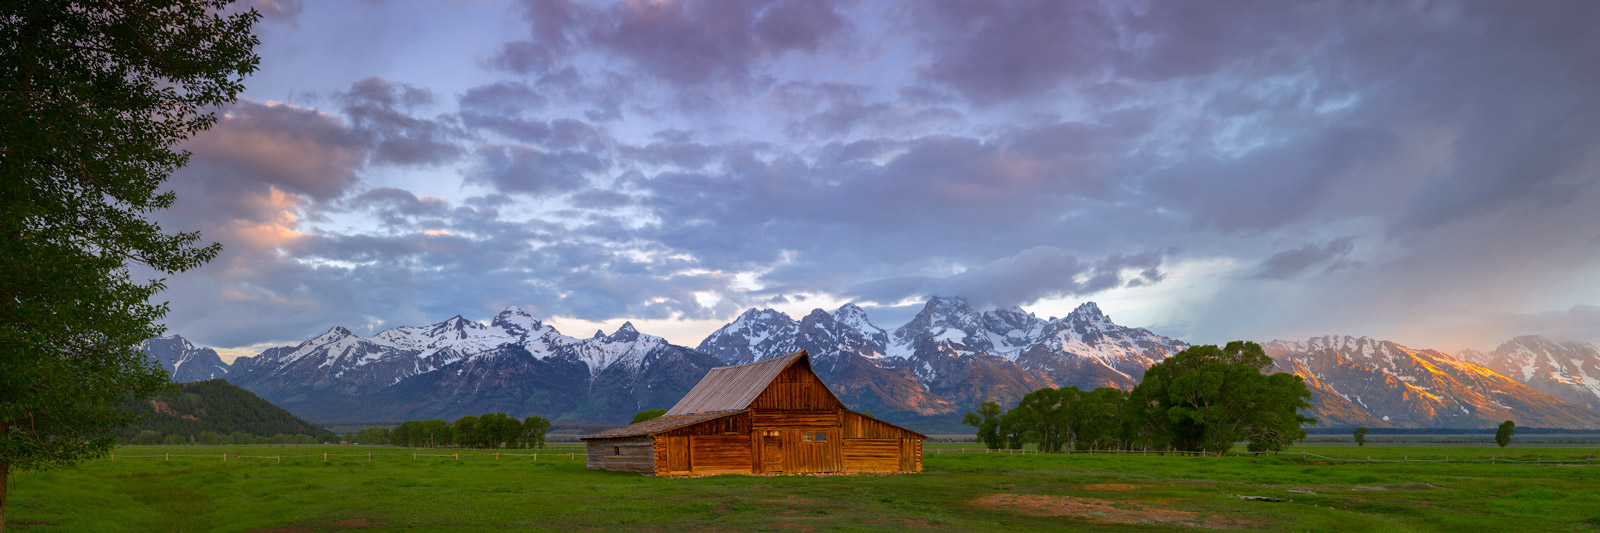 A Limited Edition, Fine Art photograph showcasing the Mormon Row barn at sunrise at Grand Teton National Park in Wyoming.  Available...